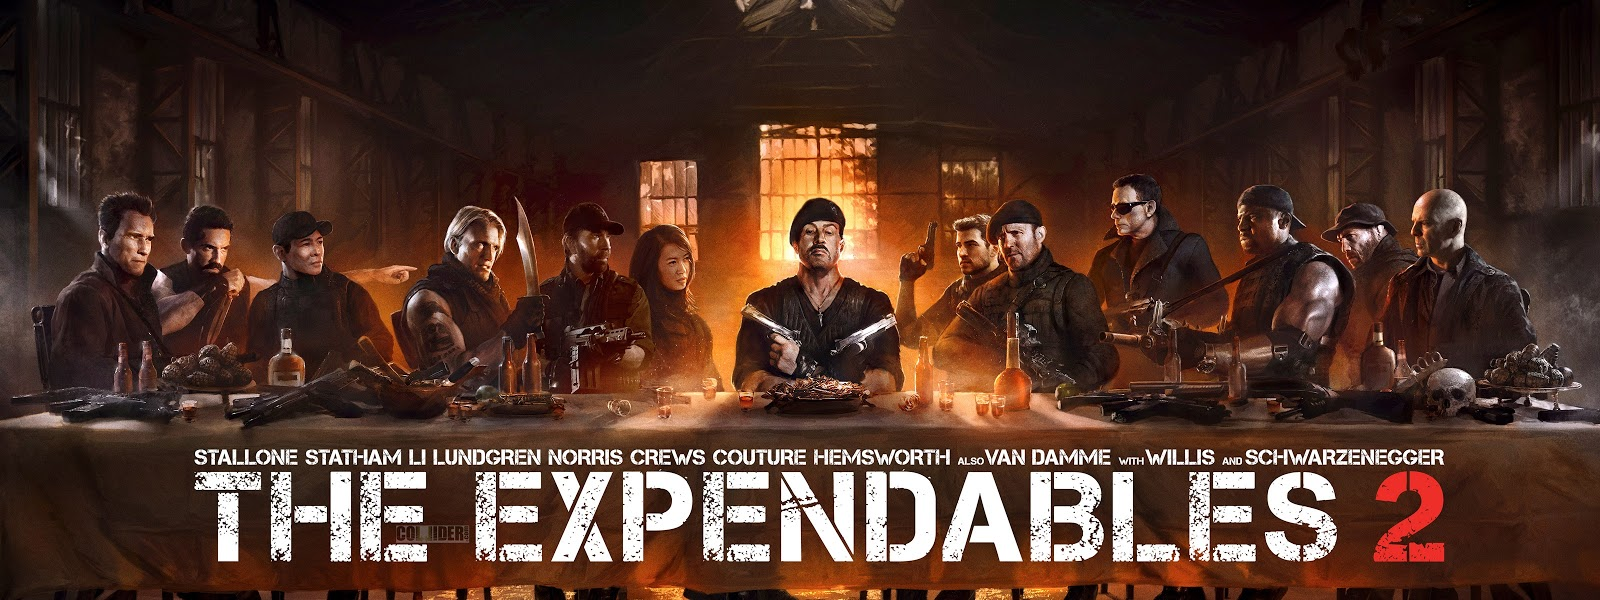 expendables 2 the last supper wallpapers - DriverLayer ...